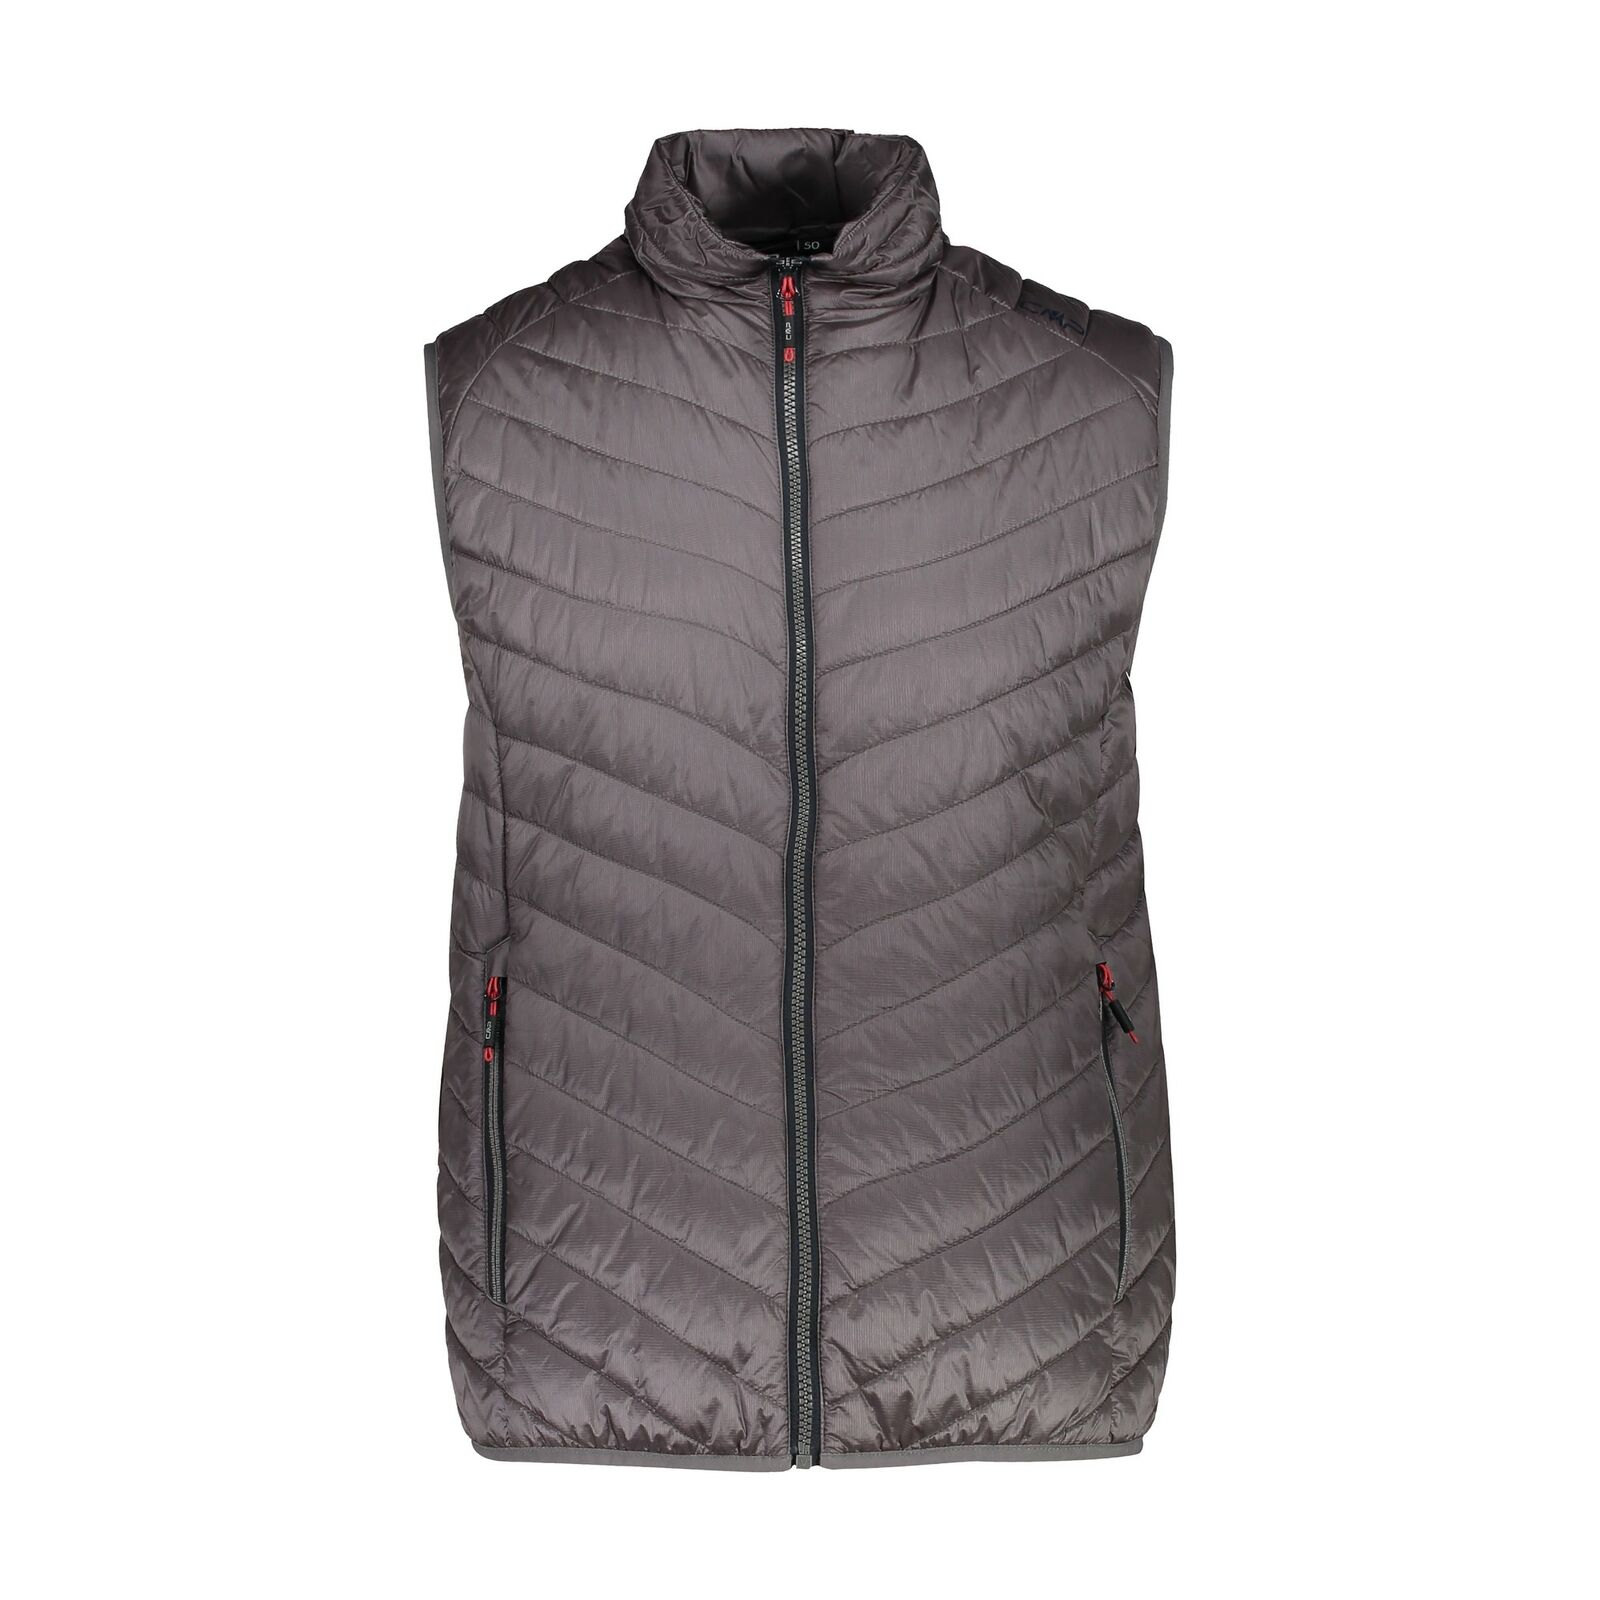 CMP vest waistcoat man vest lightweight breathable  waterproof brown  come to choose your own sports style